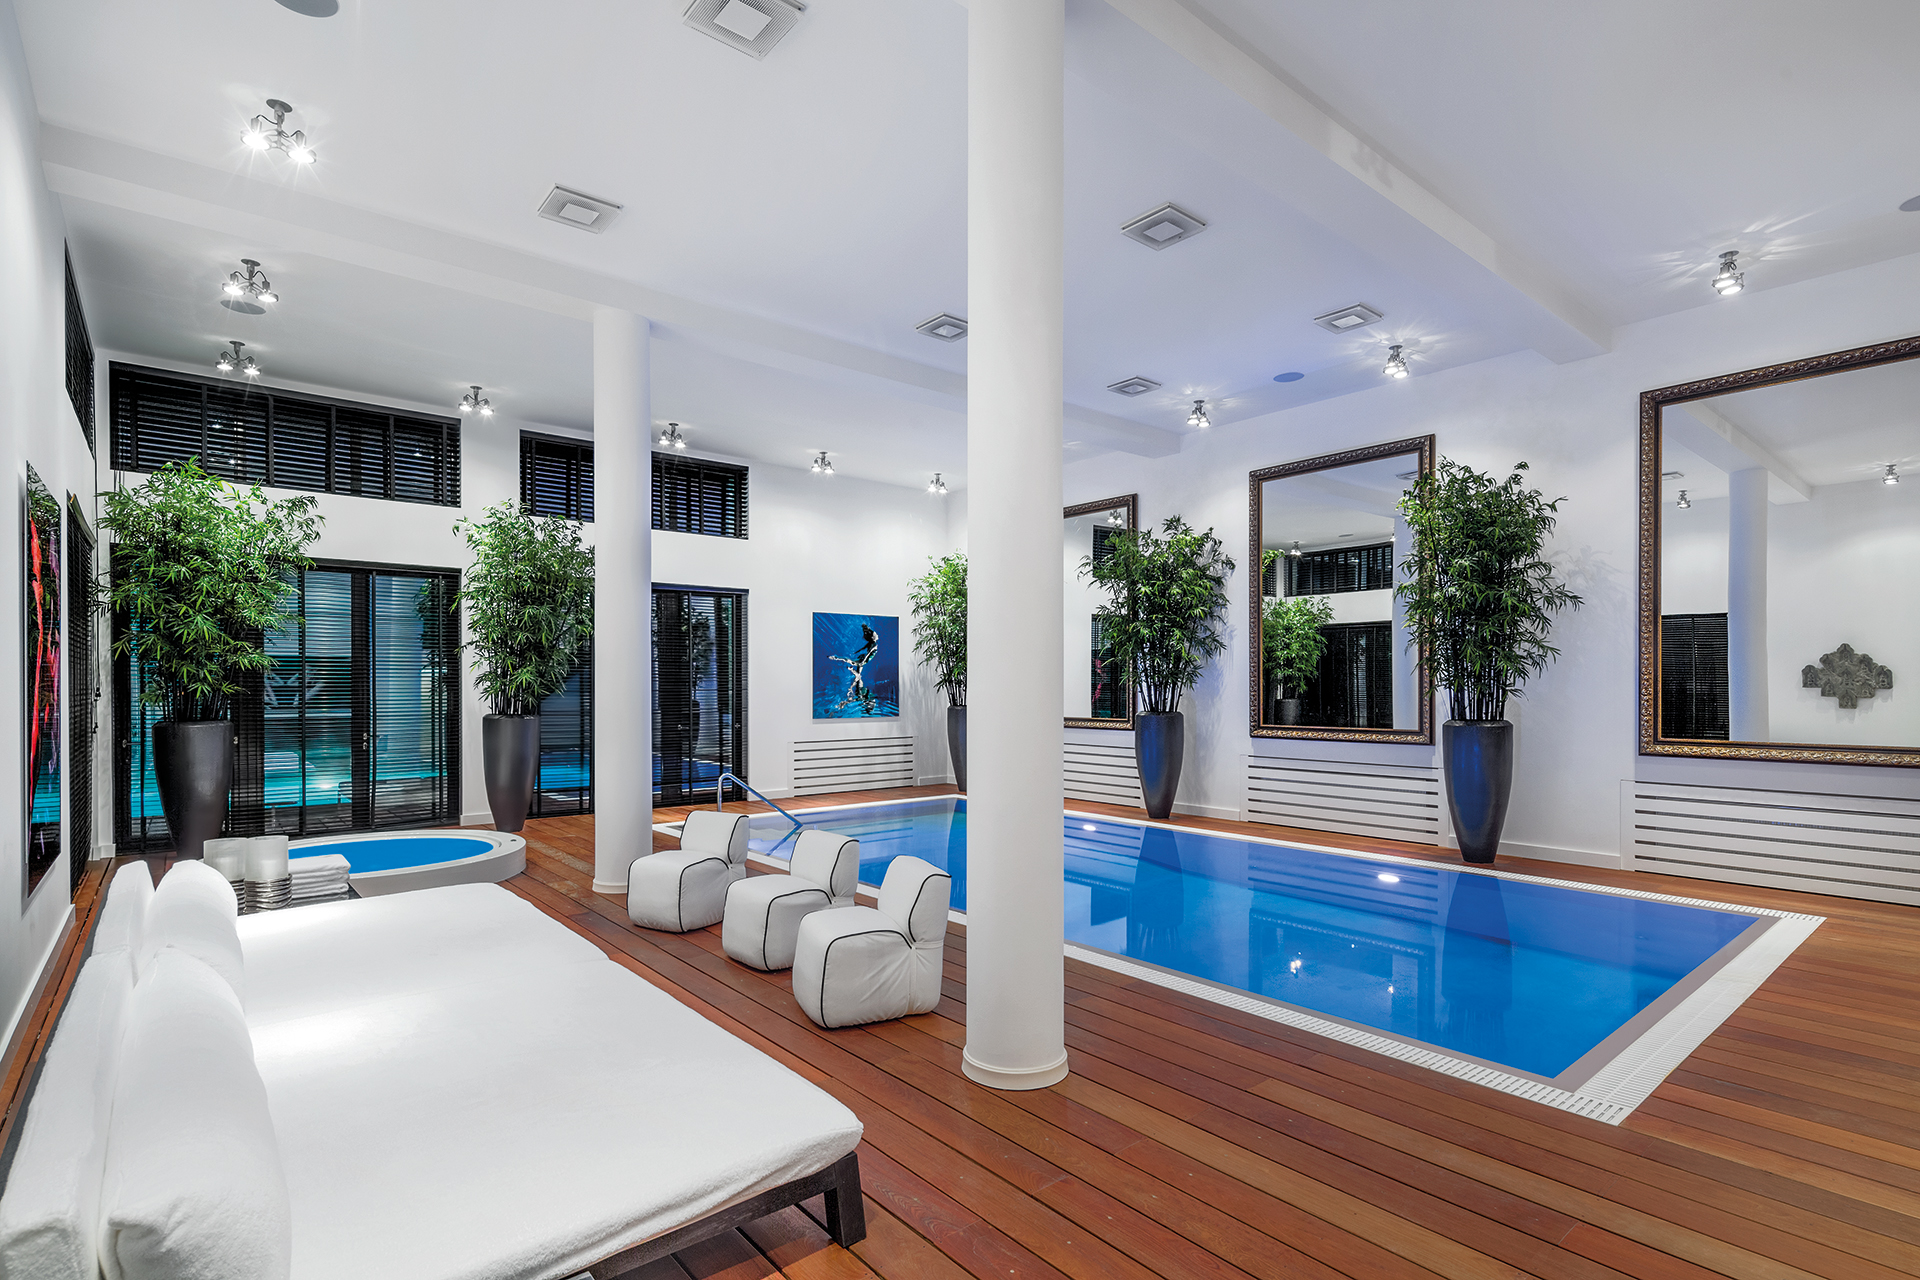 Indoor pool with surrounding deck and a Jacuzzi in the corner. Large mirrors and potted bamboos line the wall